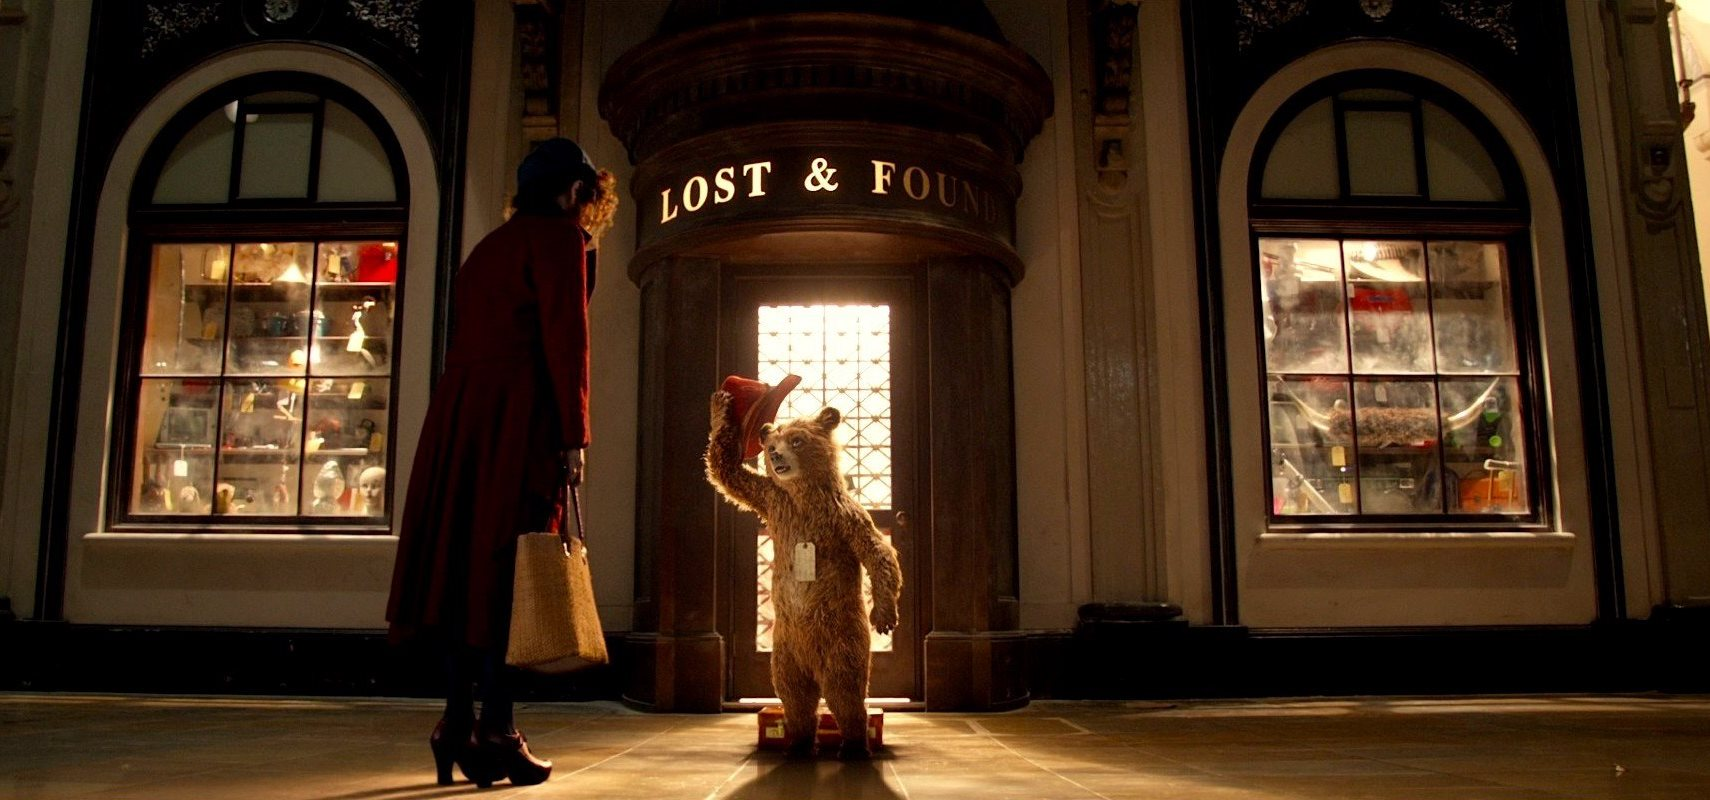 Sally Hawkins encounters Paddington outside the Lost and Found at Paddington Station in Paddington (2014)